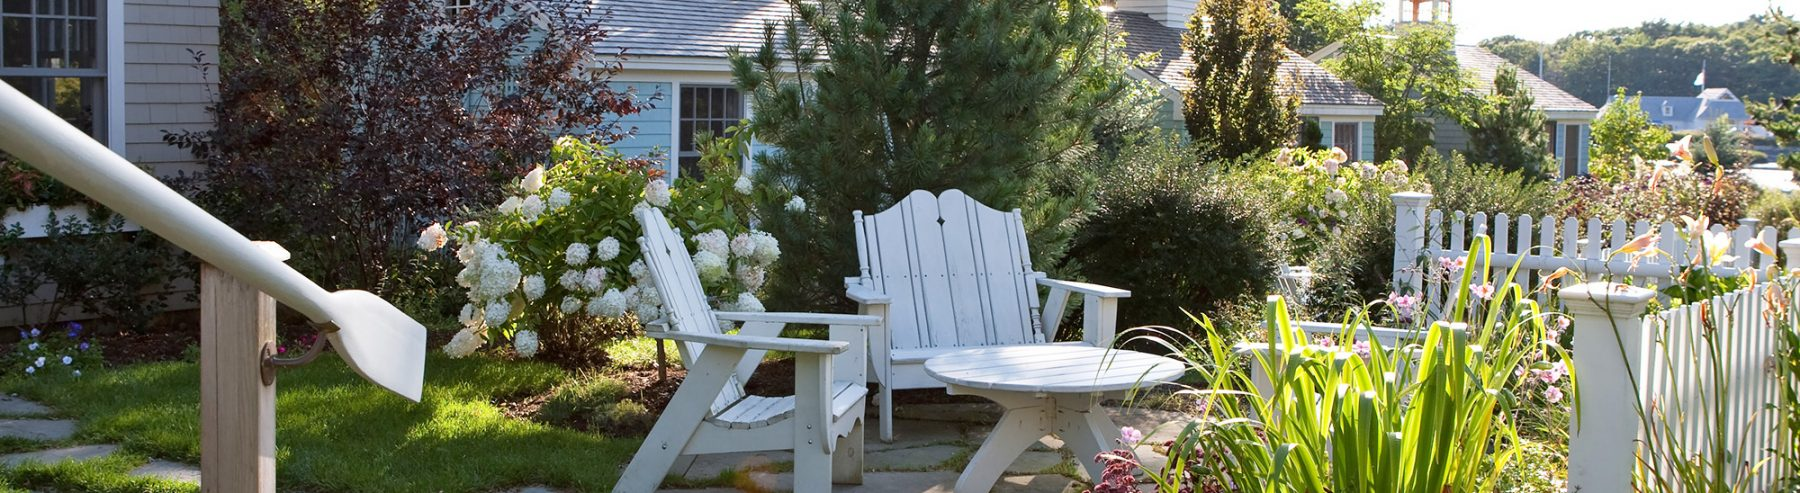 The Cottages at Cabot Cove | Kennebunkport, Maine